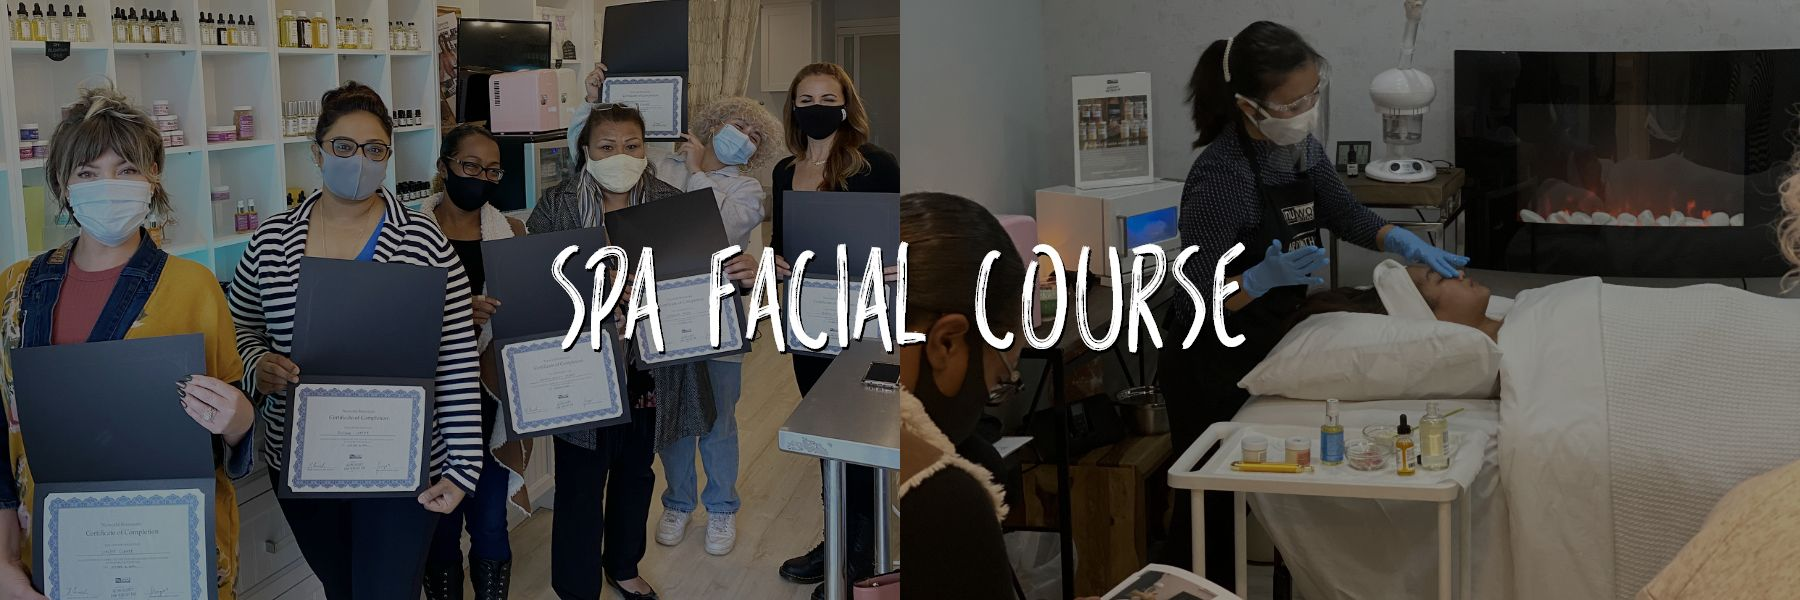 Spa Facial Course